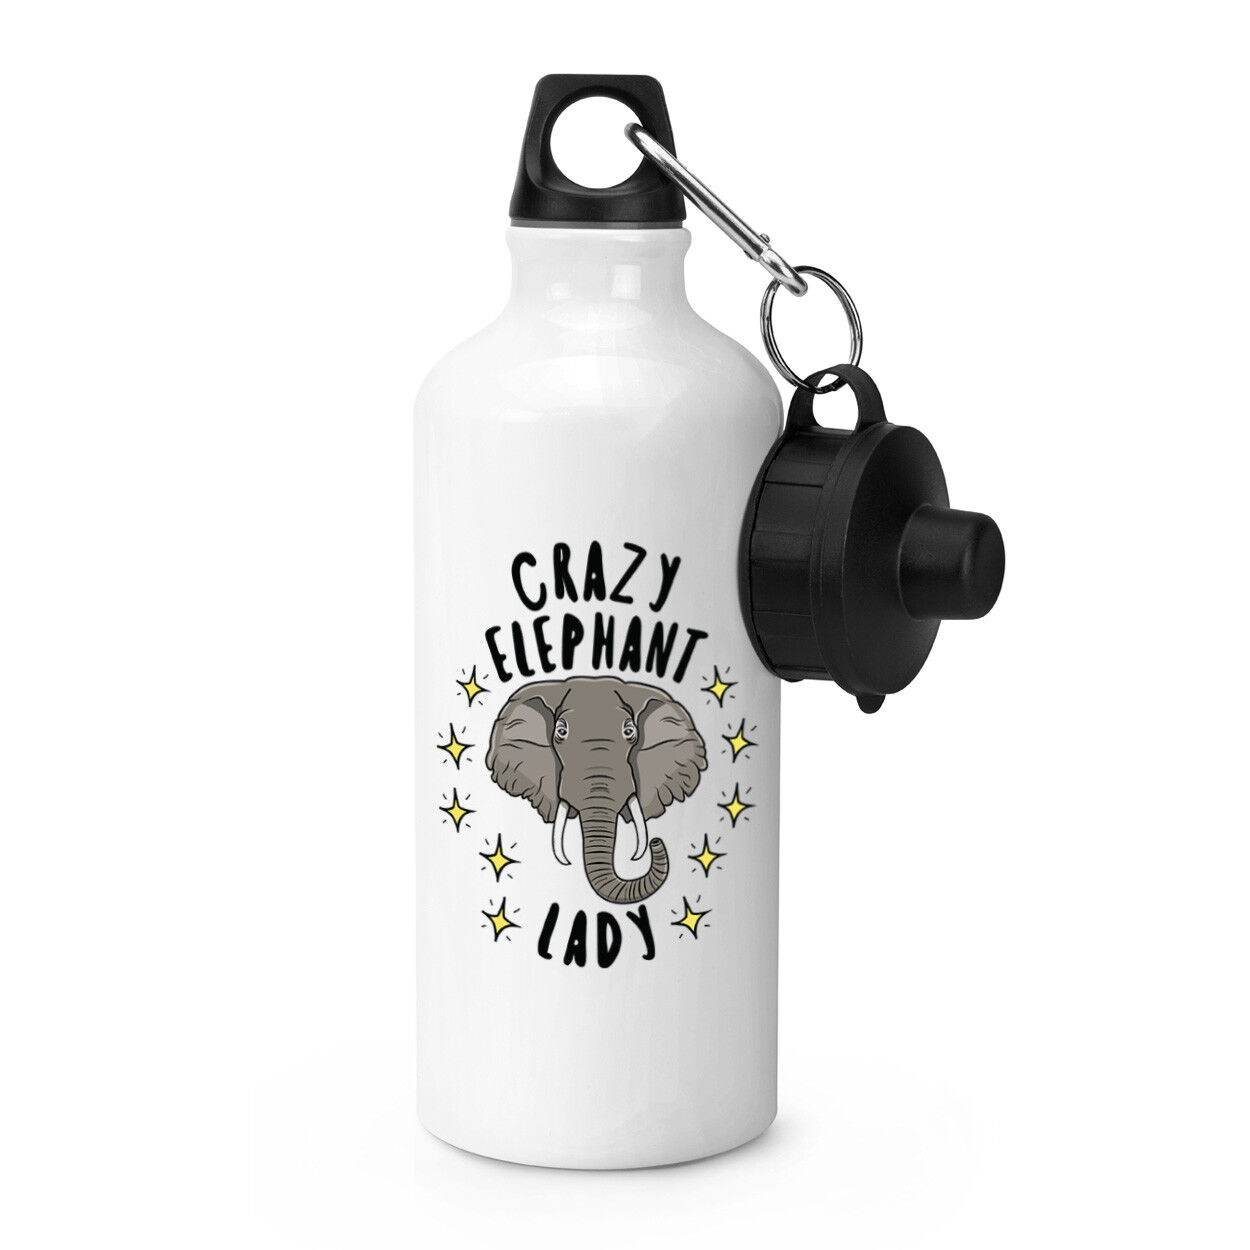 CRAZY ELEPHANT LADY LADY LADY STARS Sports Boisson Bouteille Camping fiole-Drôle Animal Blague d3e8c6